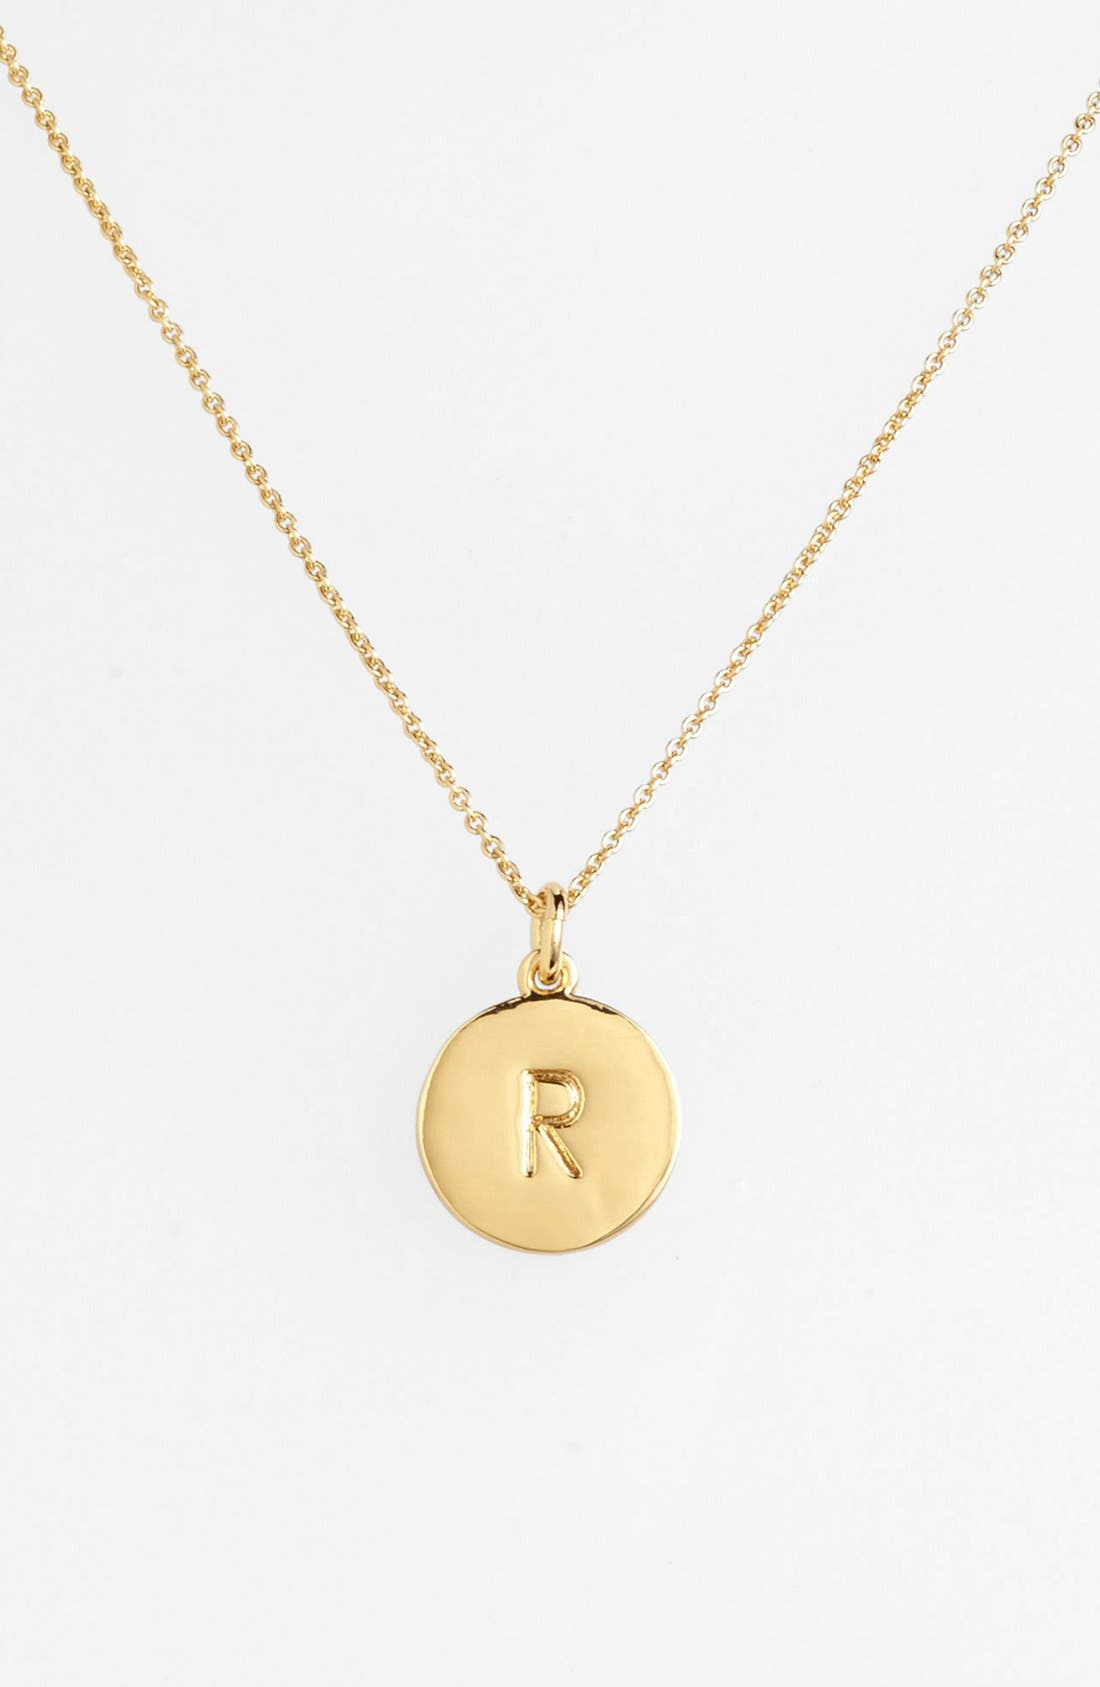 Womens necklaces kate spade new york one in a million initial pendant necklace mozeypictures Image collections